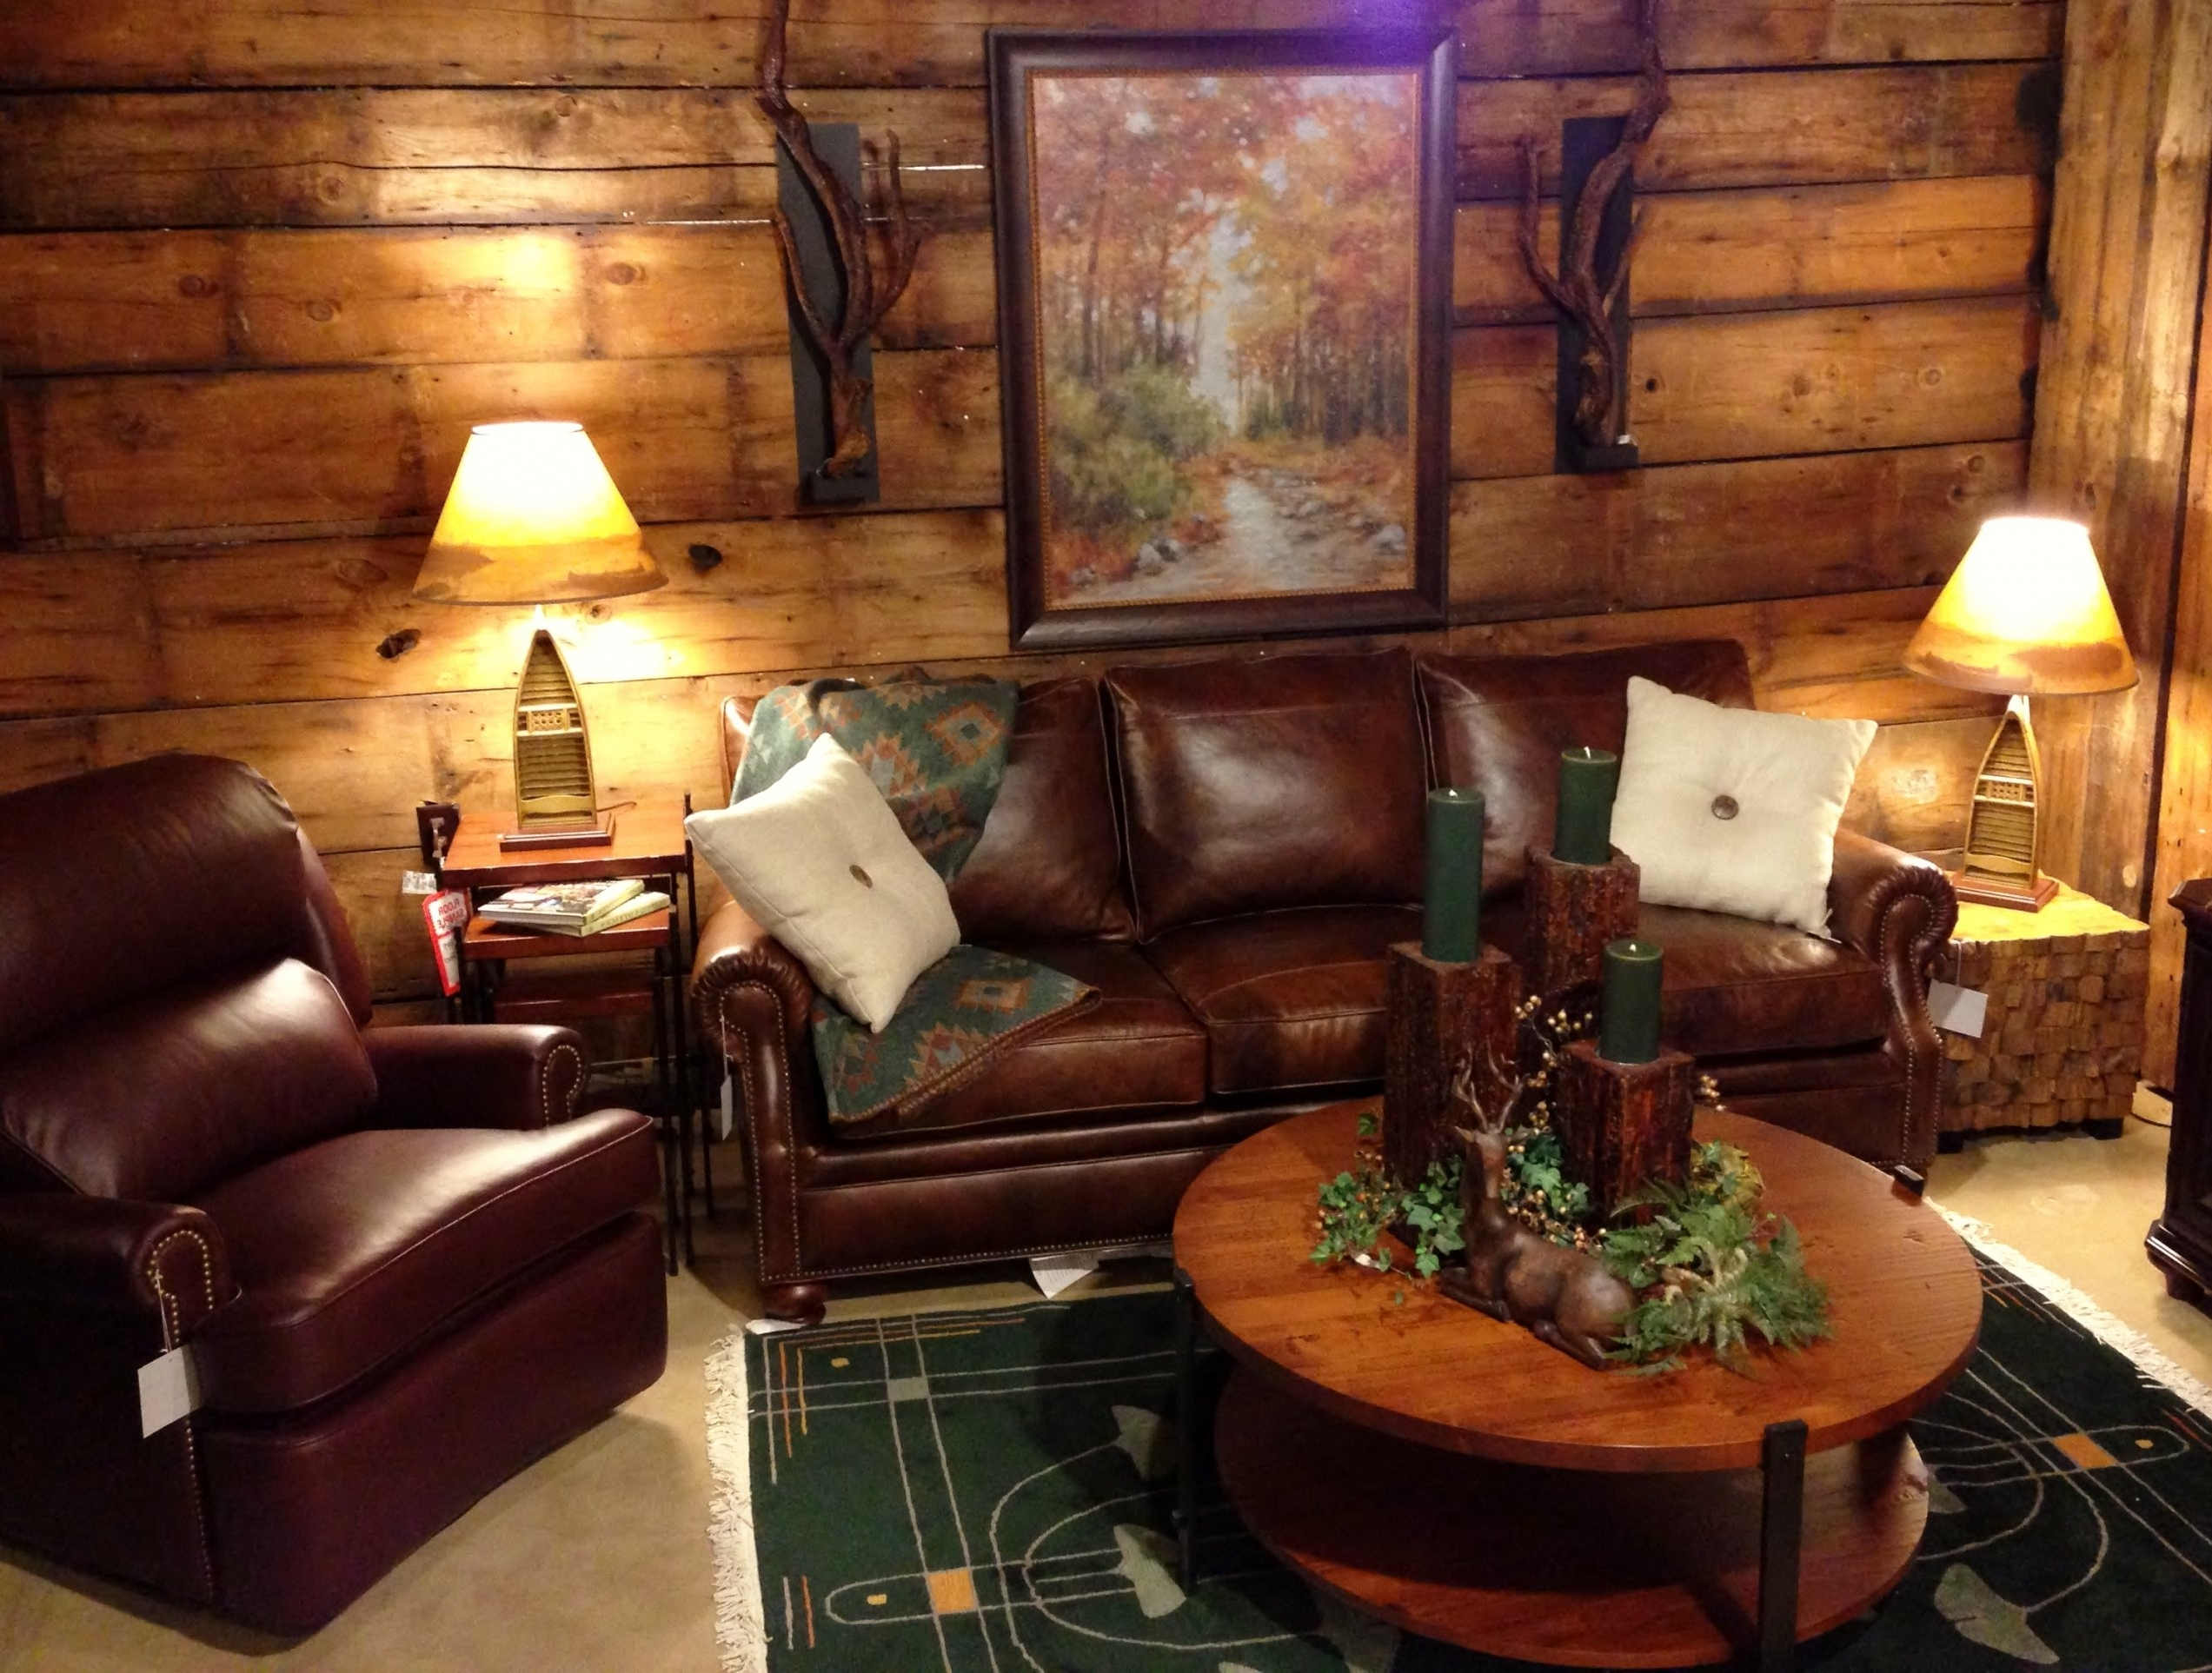 Rustic Living Room Table Lamps Throughout Famous Country Living Room Table Lamps (View 8 of 15)